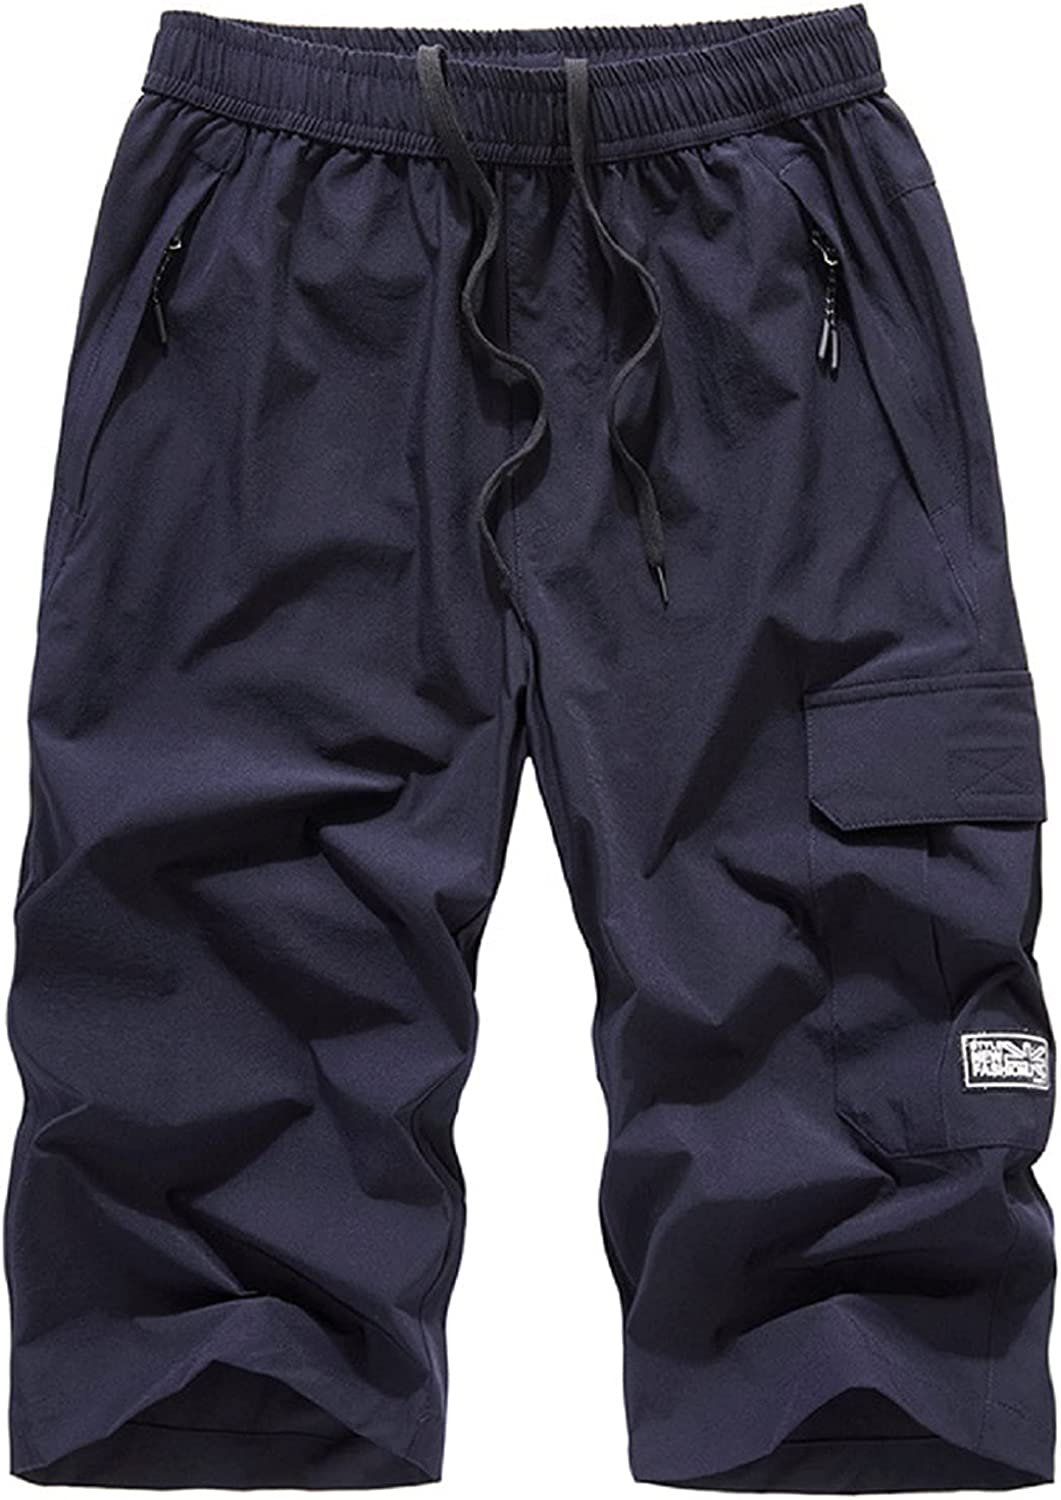 Plus Size Men's Shorts Over item handling ☆ Classic-fit Special sale item Quick Dry Sports Beach